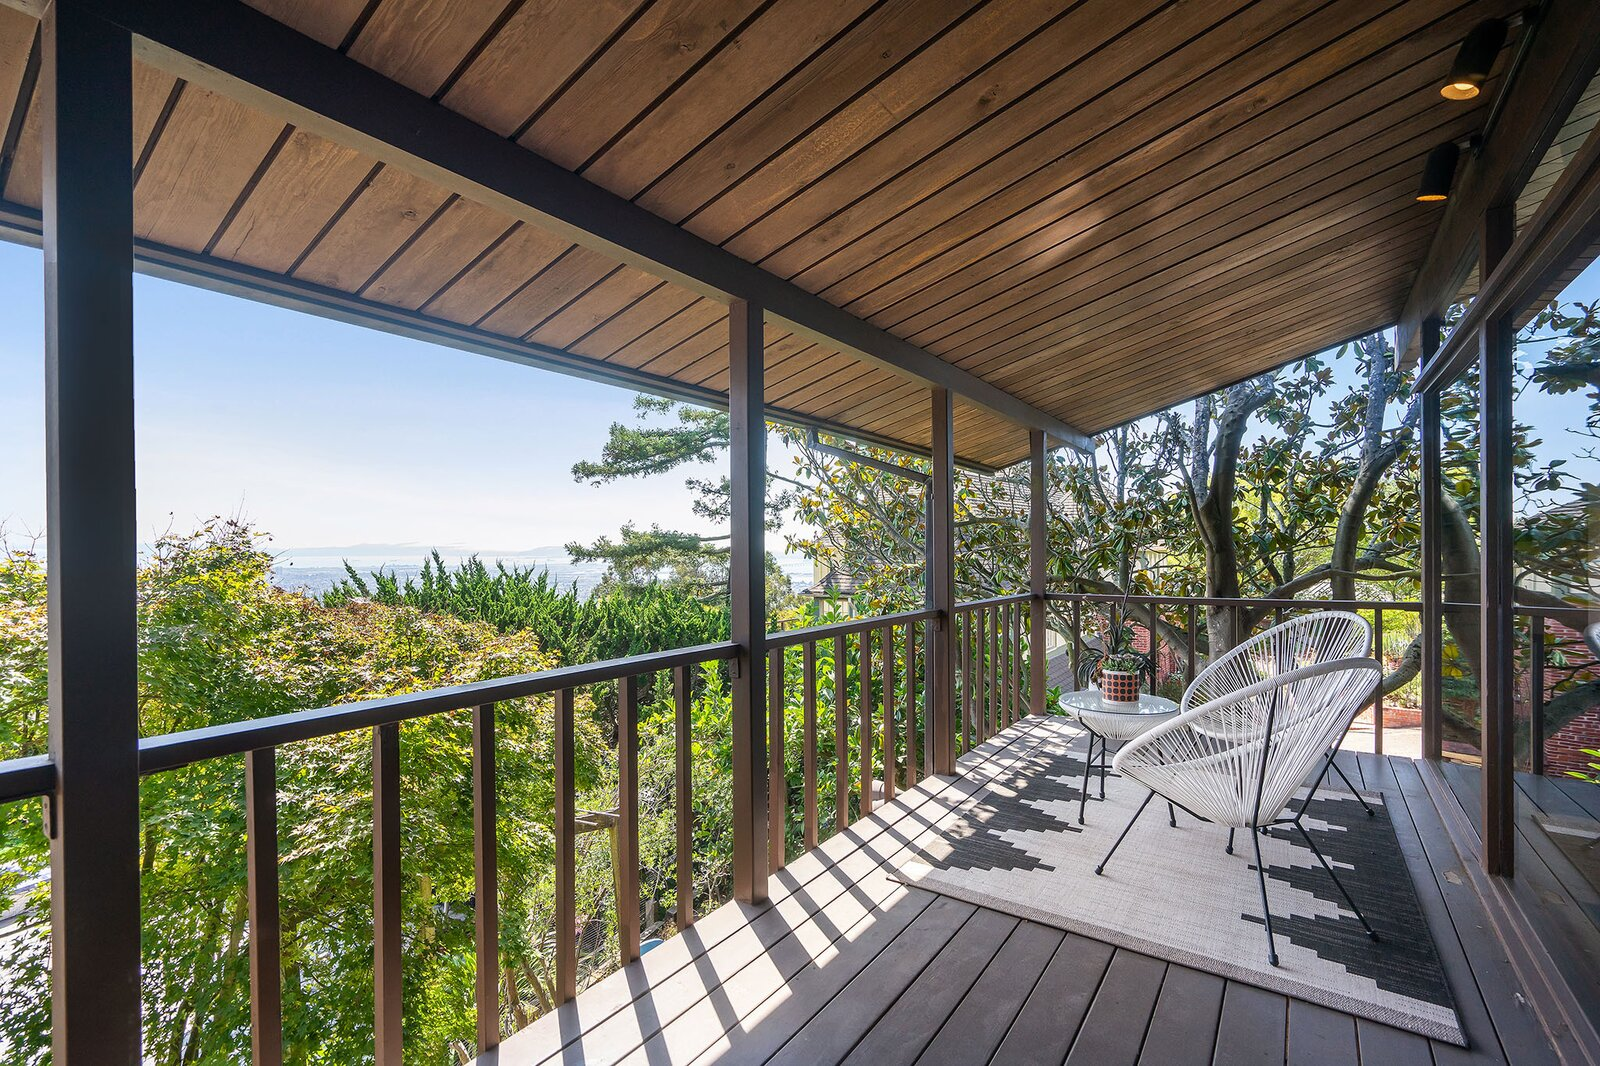 Deck at the Hargrove Residence by Roger Lee